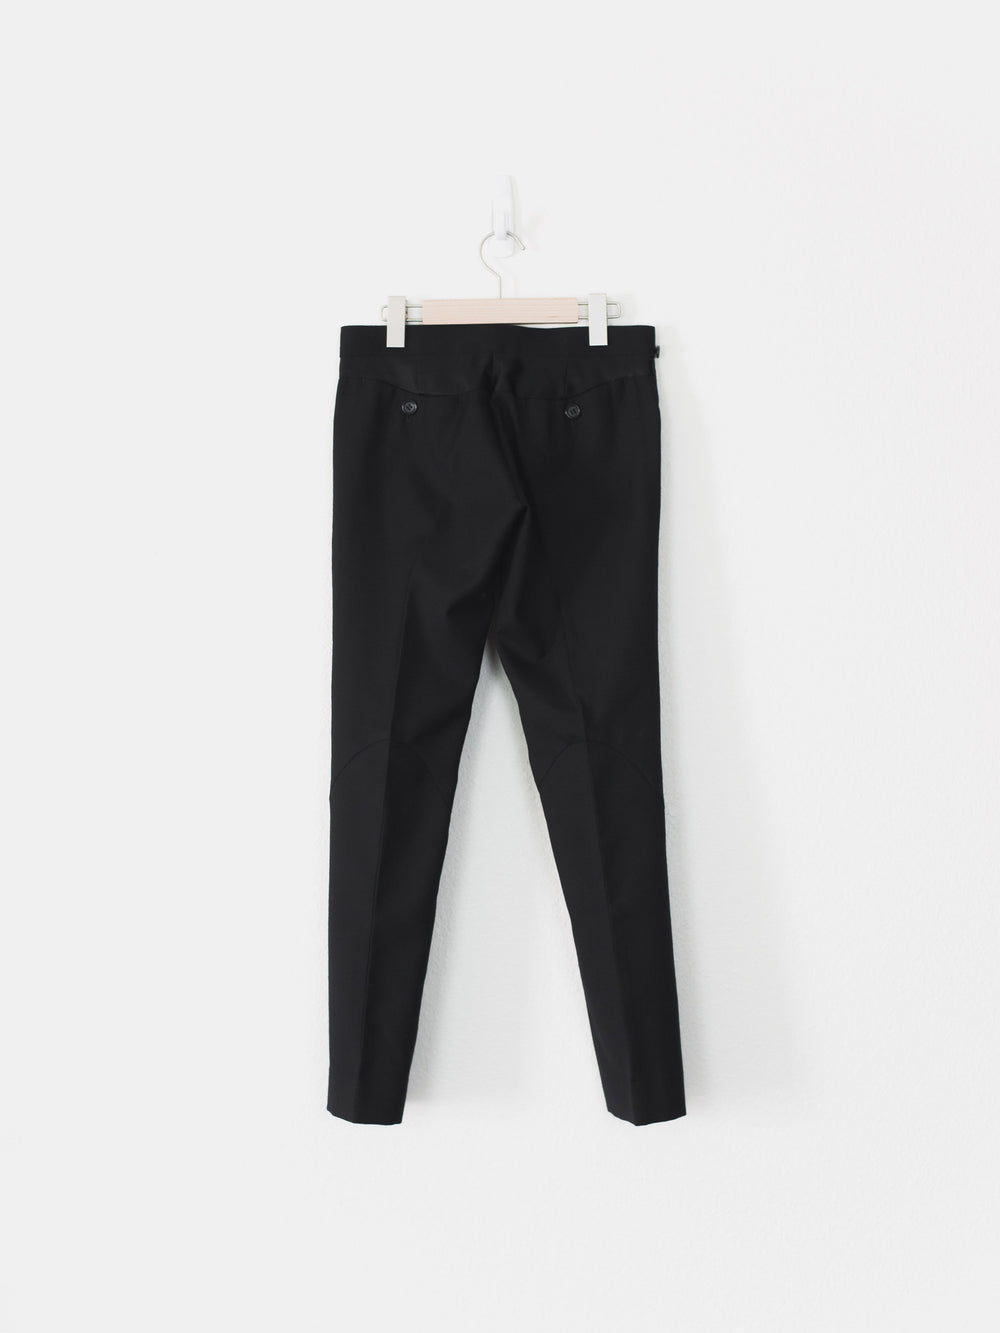 Undercover AW09 Earmuff Maniac Wool Trousers